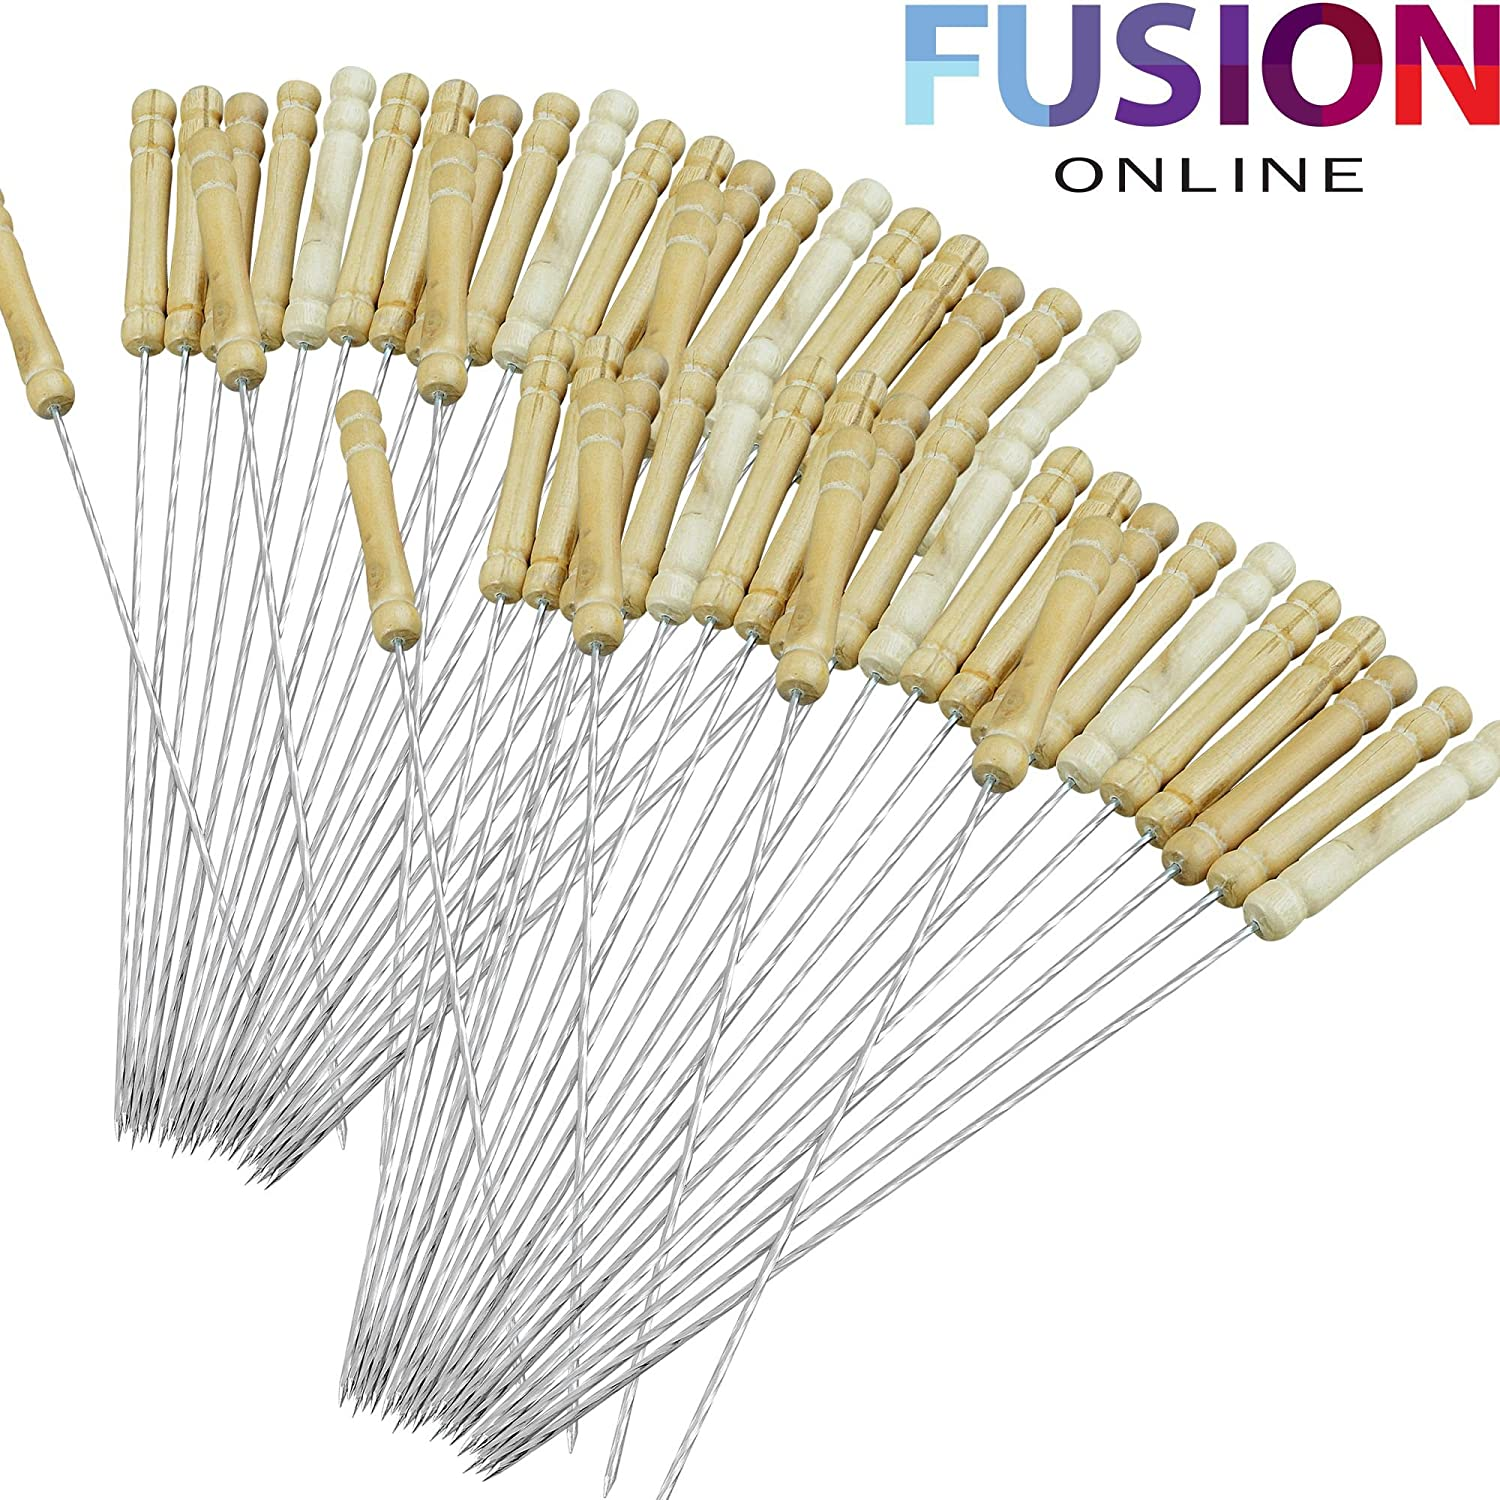 48 X BBQ CHROME SKEWERS 30CM METAL BARBECUE KEBAB STICKS FOOD GRILL COOKING TANDOORI Fusion